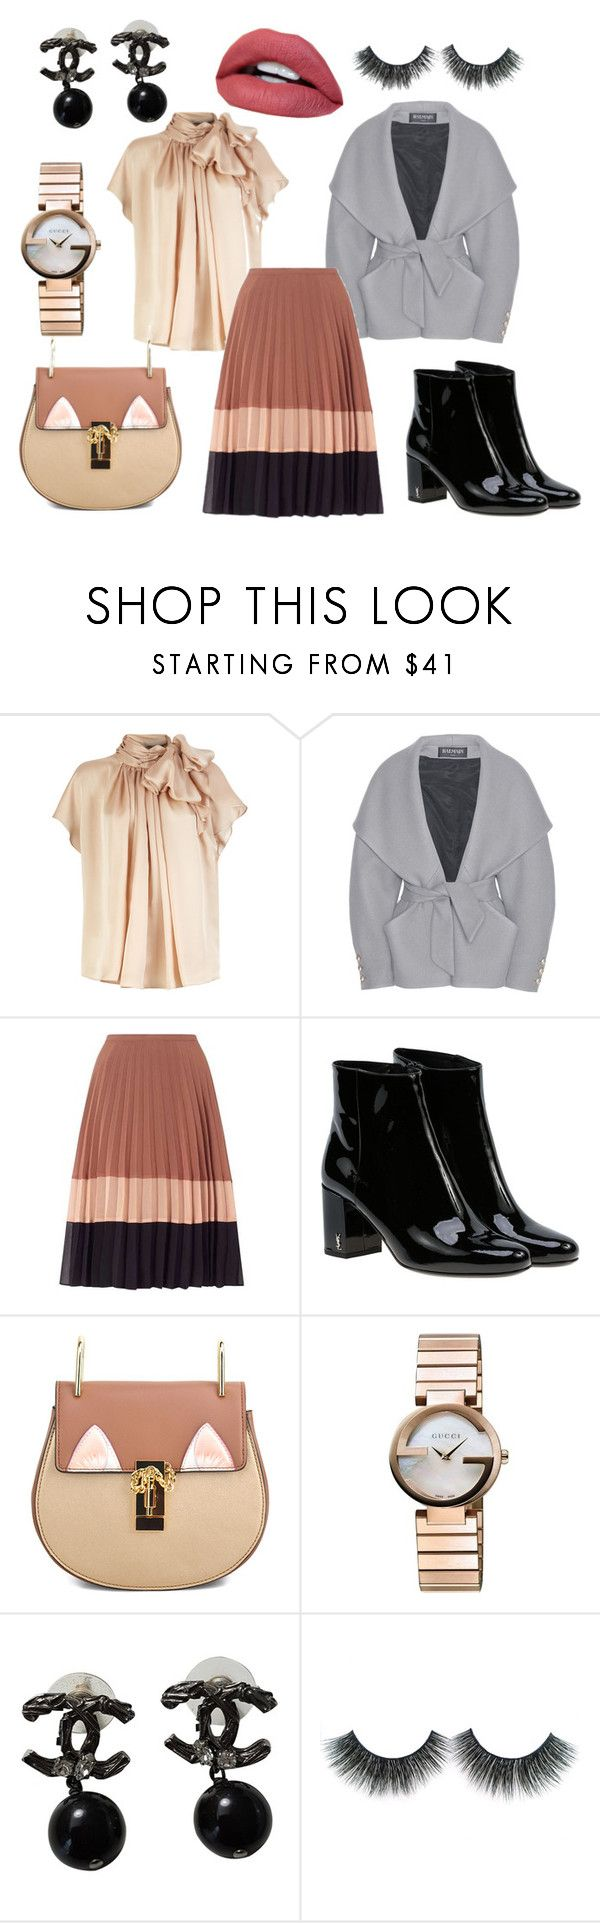 """Натюрель"" by evavendoc on Polyvore featuring мода, Balmain, Miss Selfridge, Yves Saint Laurent, Gucci и Chanel"